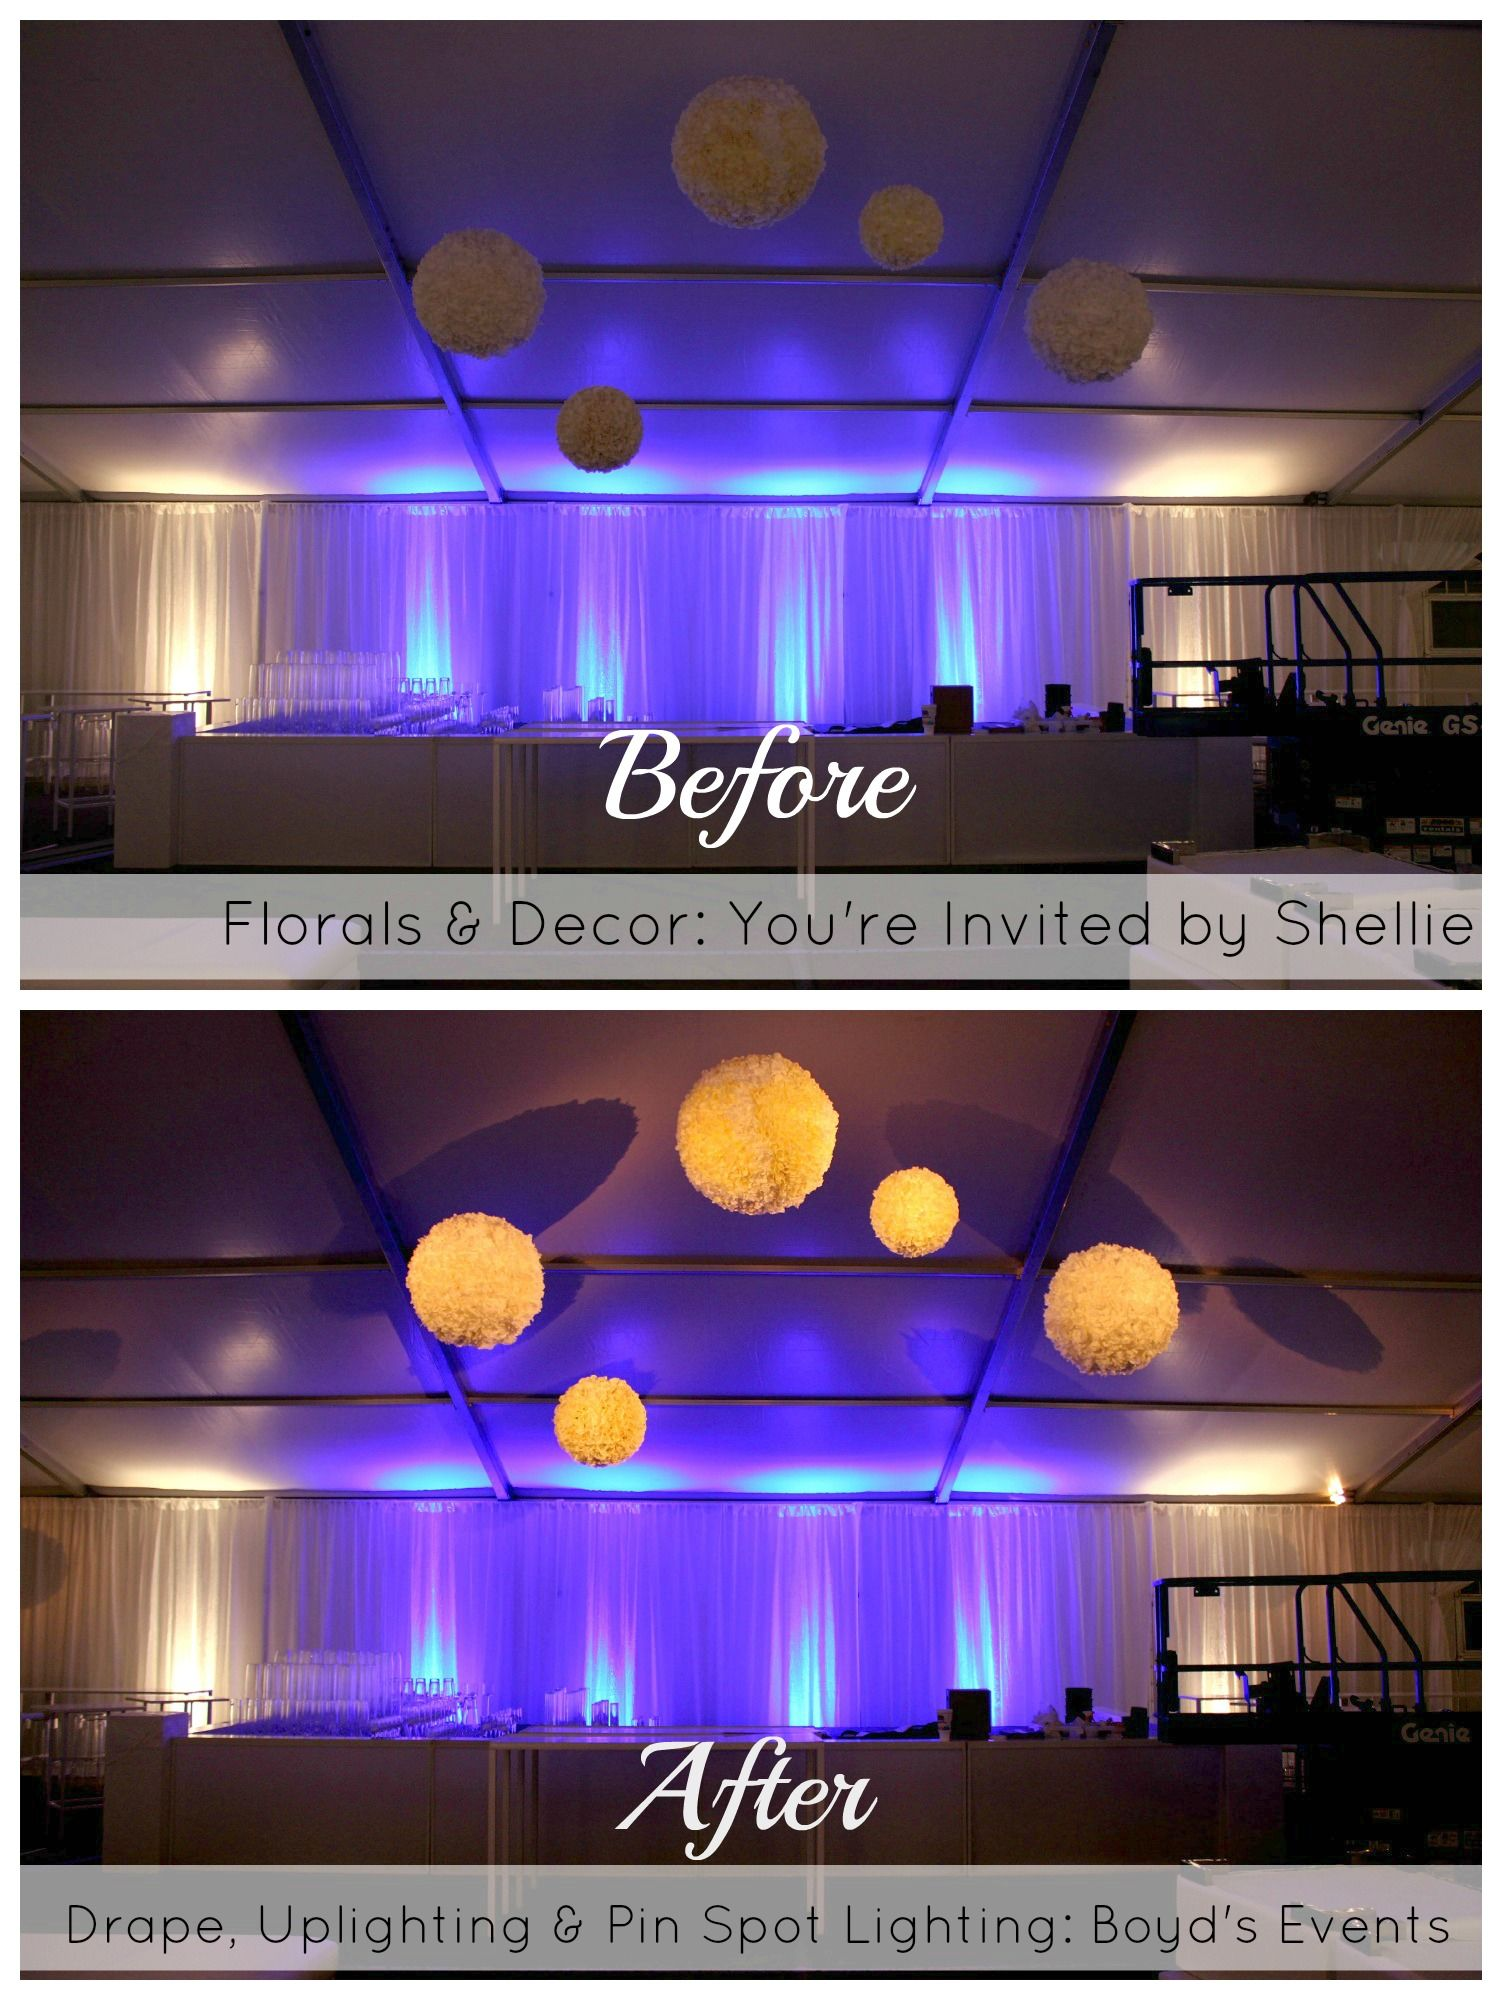 Lighting can make all the difference!  Call Boyd's events for more information! 432-262-1951